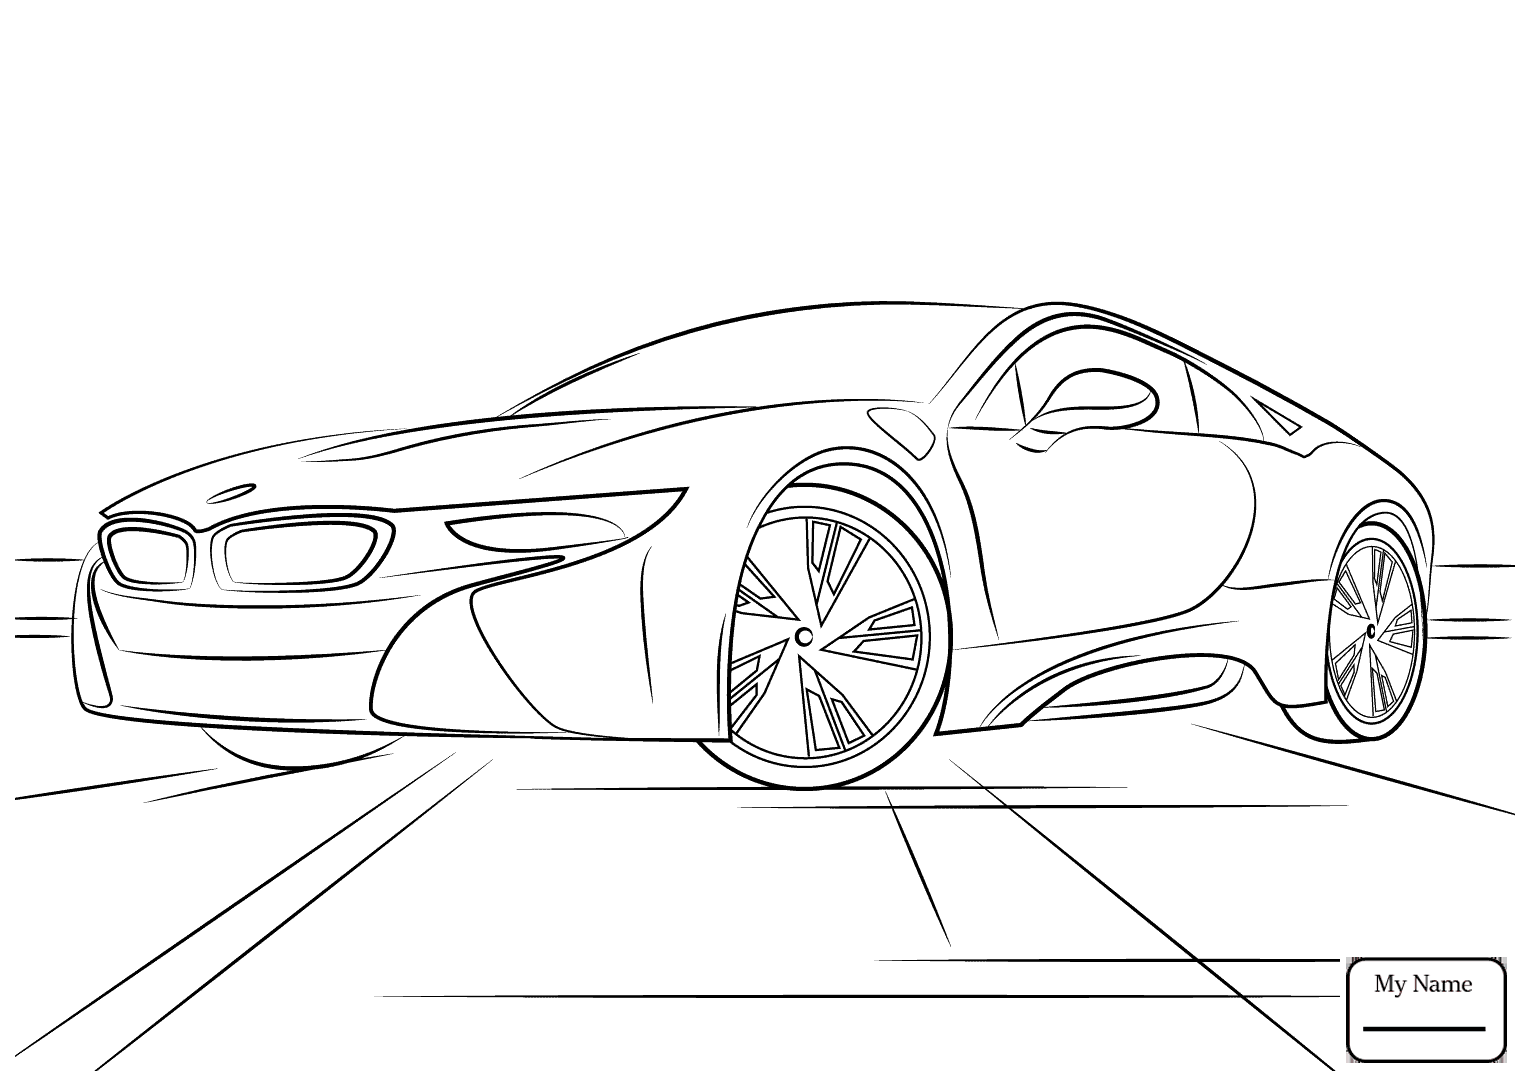 Bmw Drawing At Getdrawings